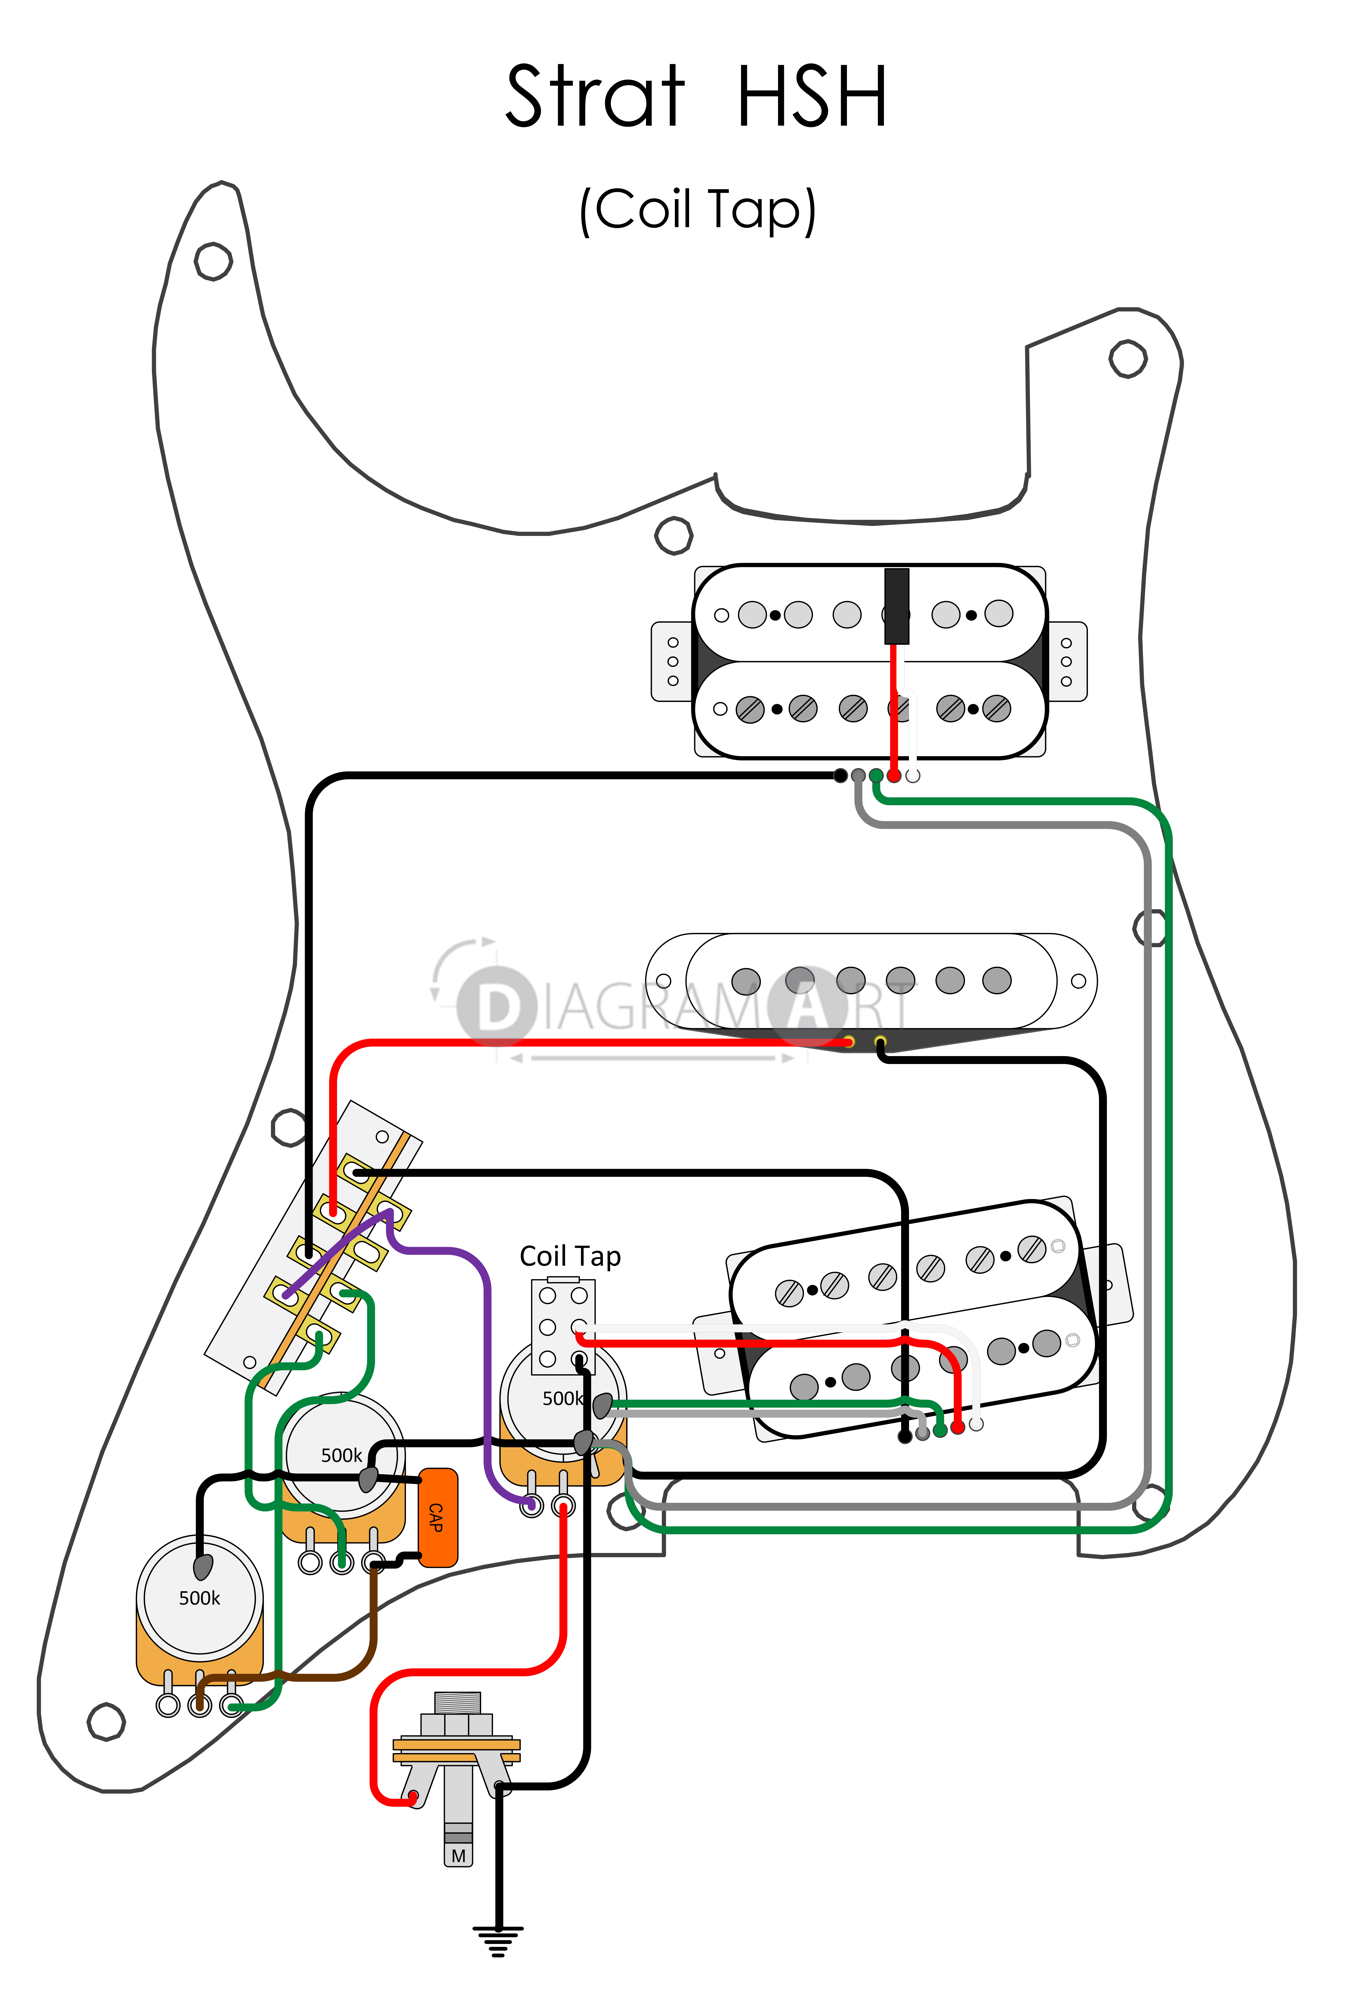 download_5409ee03 eedd 4286 891a d129fb56a9b0?v=1476390477 electric guitar wiring strat hsh (coil tap) [electric circuit electric guitar wiring at gsmx.co